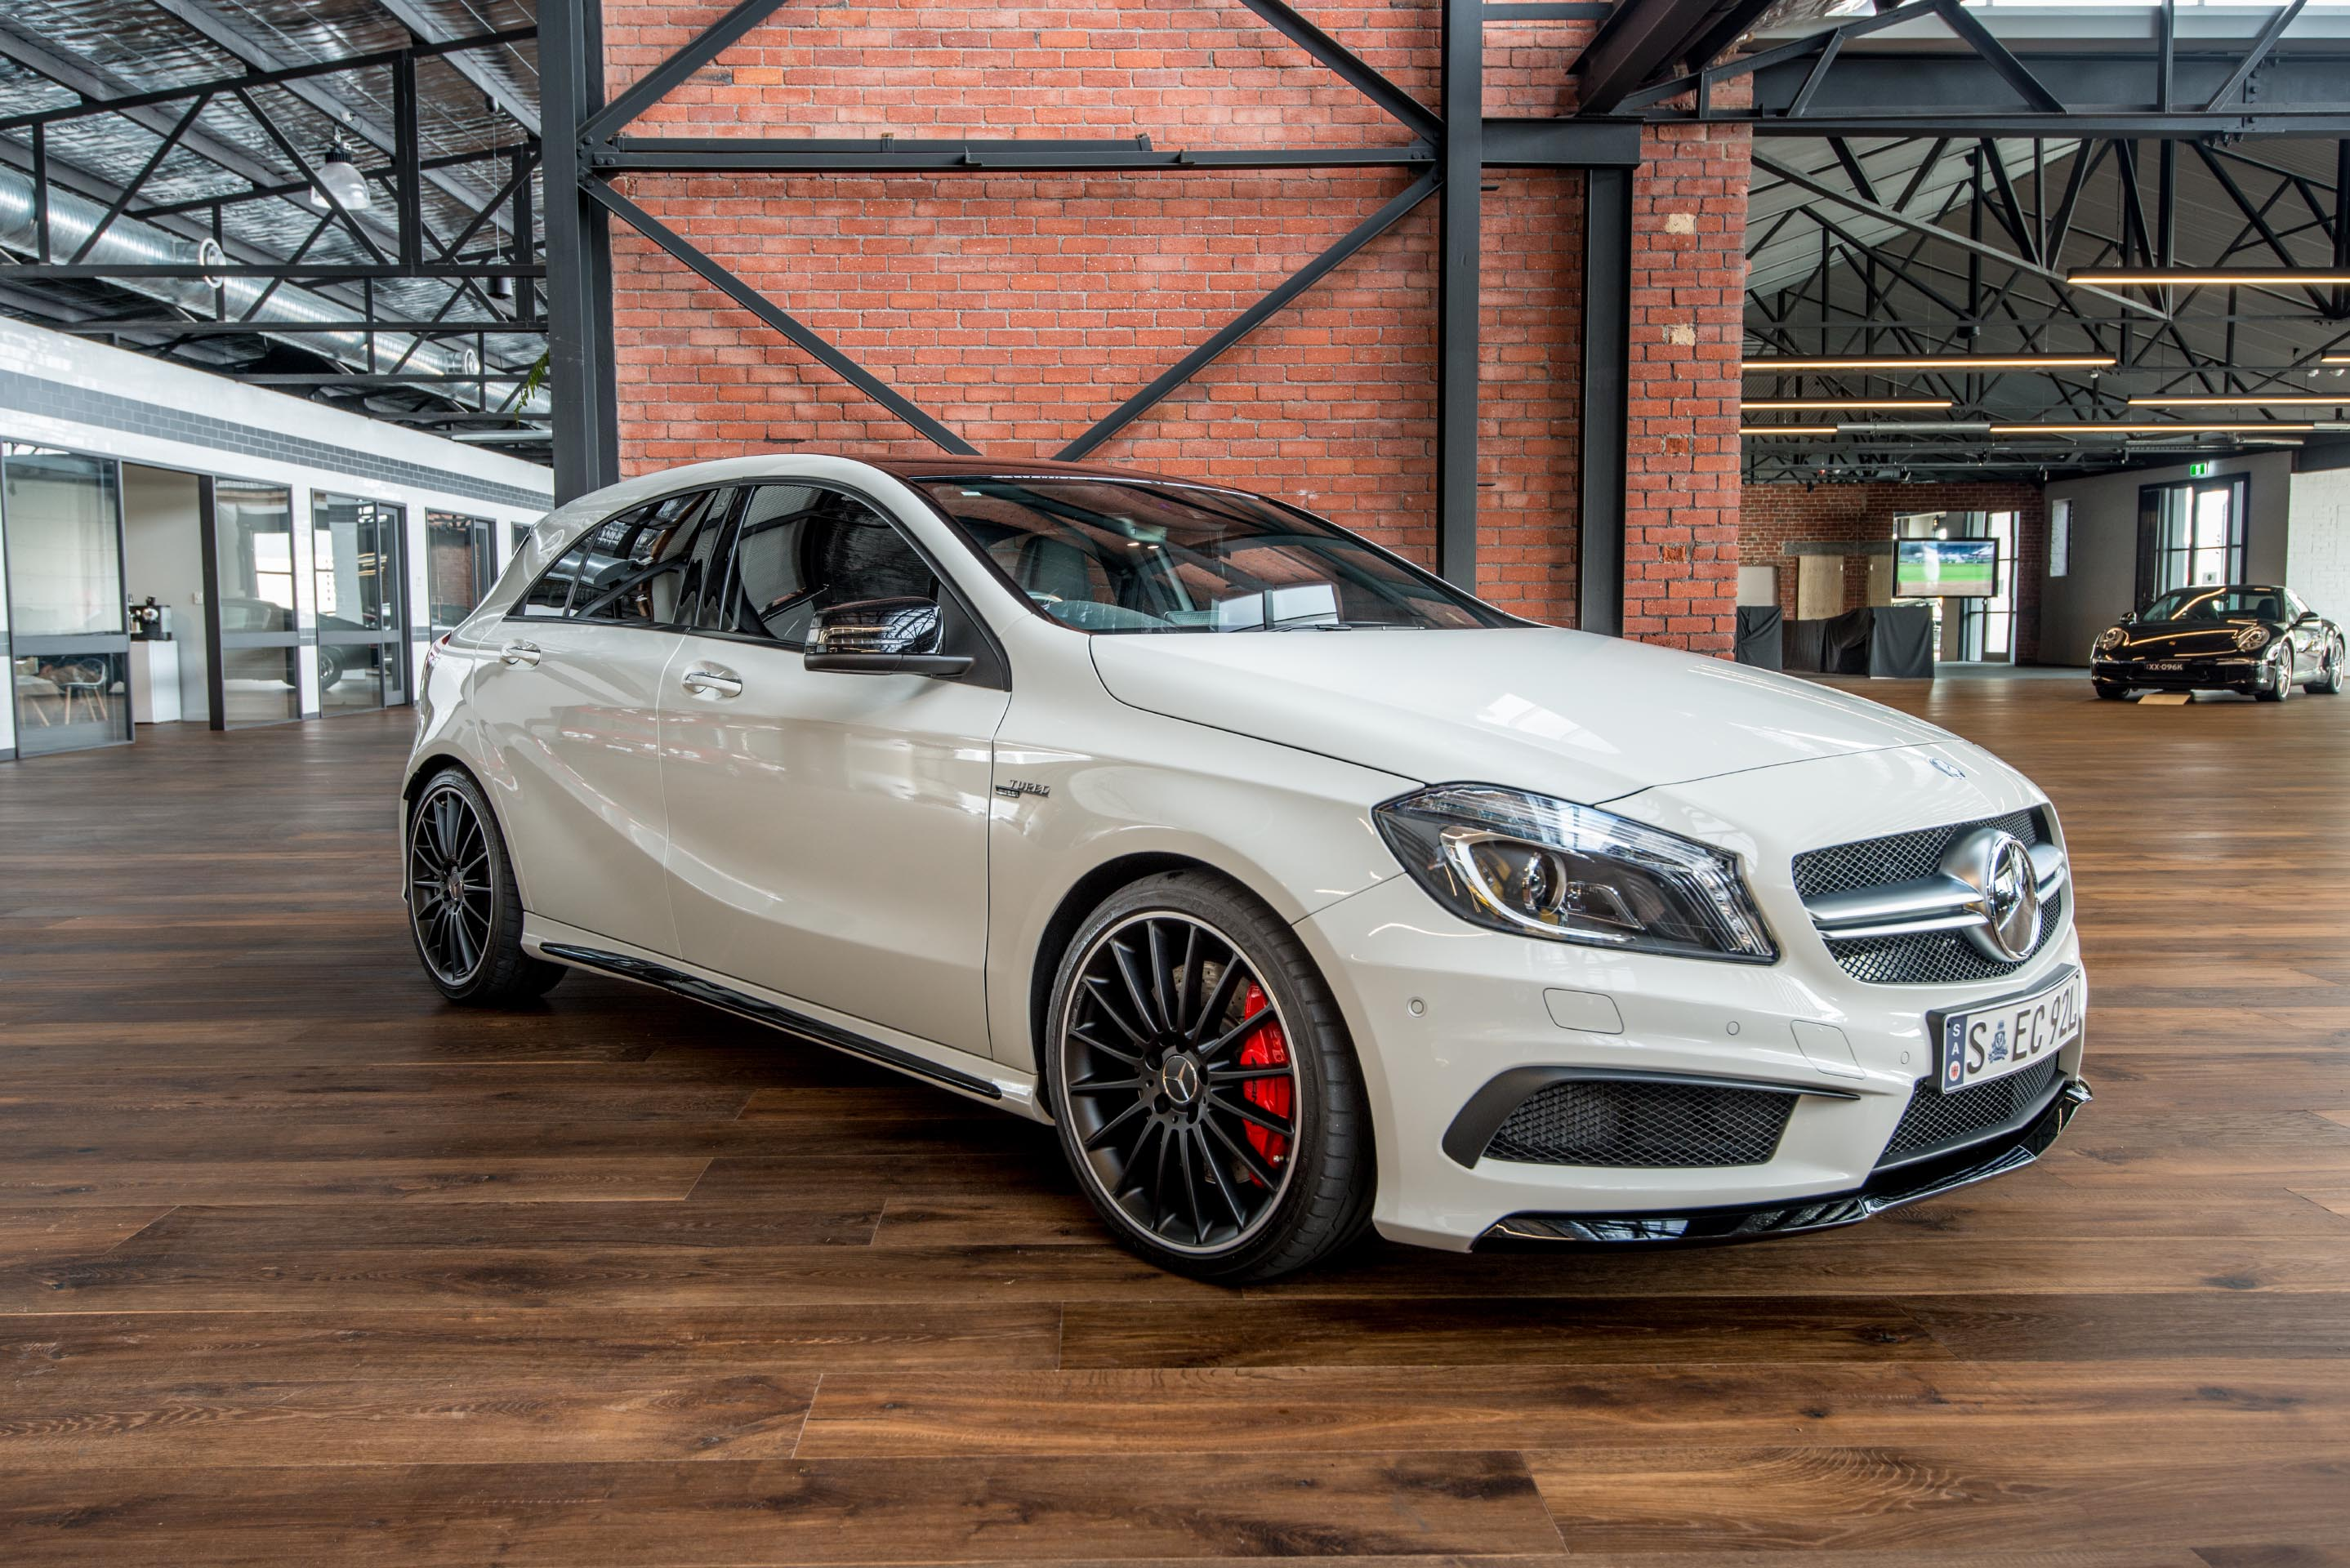 2015 mercedes a45 amg richmonds classic and prestige cars storage and sales adelaide. Black Bedroom Furniture Sets. Home Design Ideas